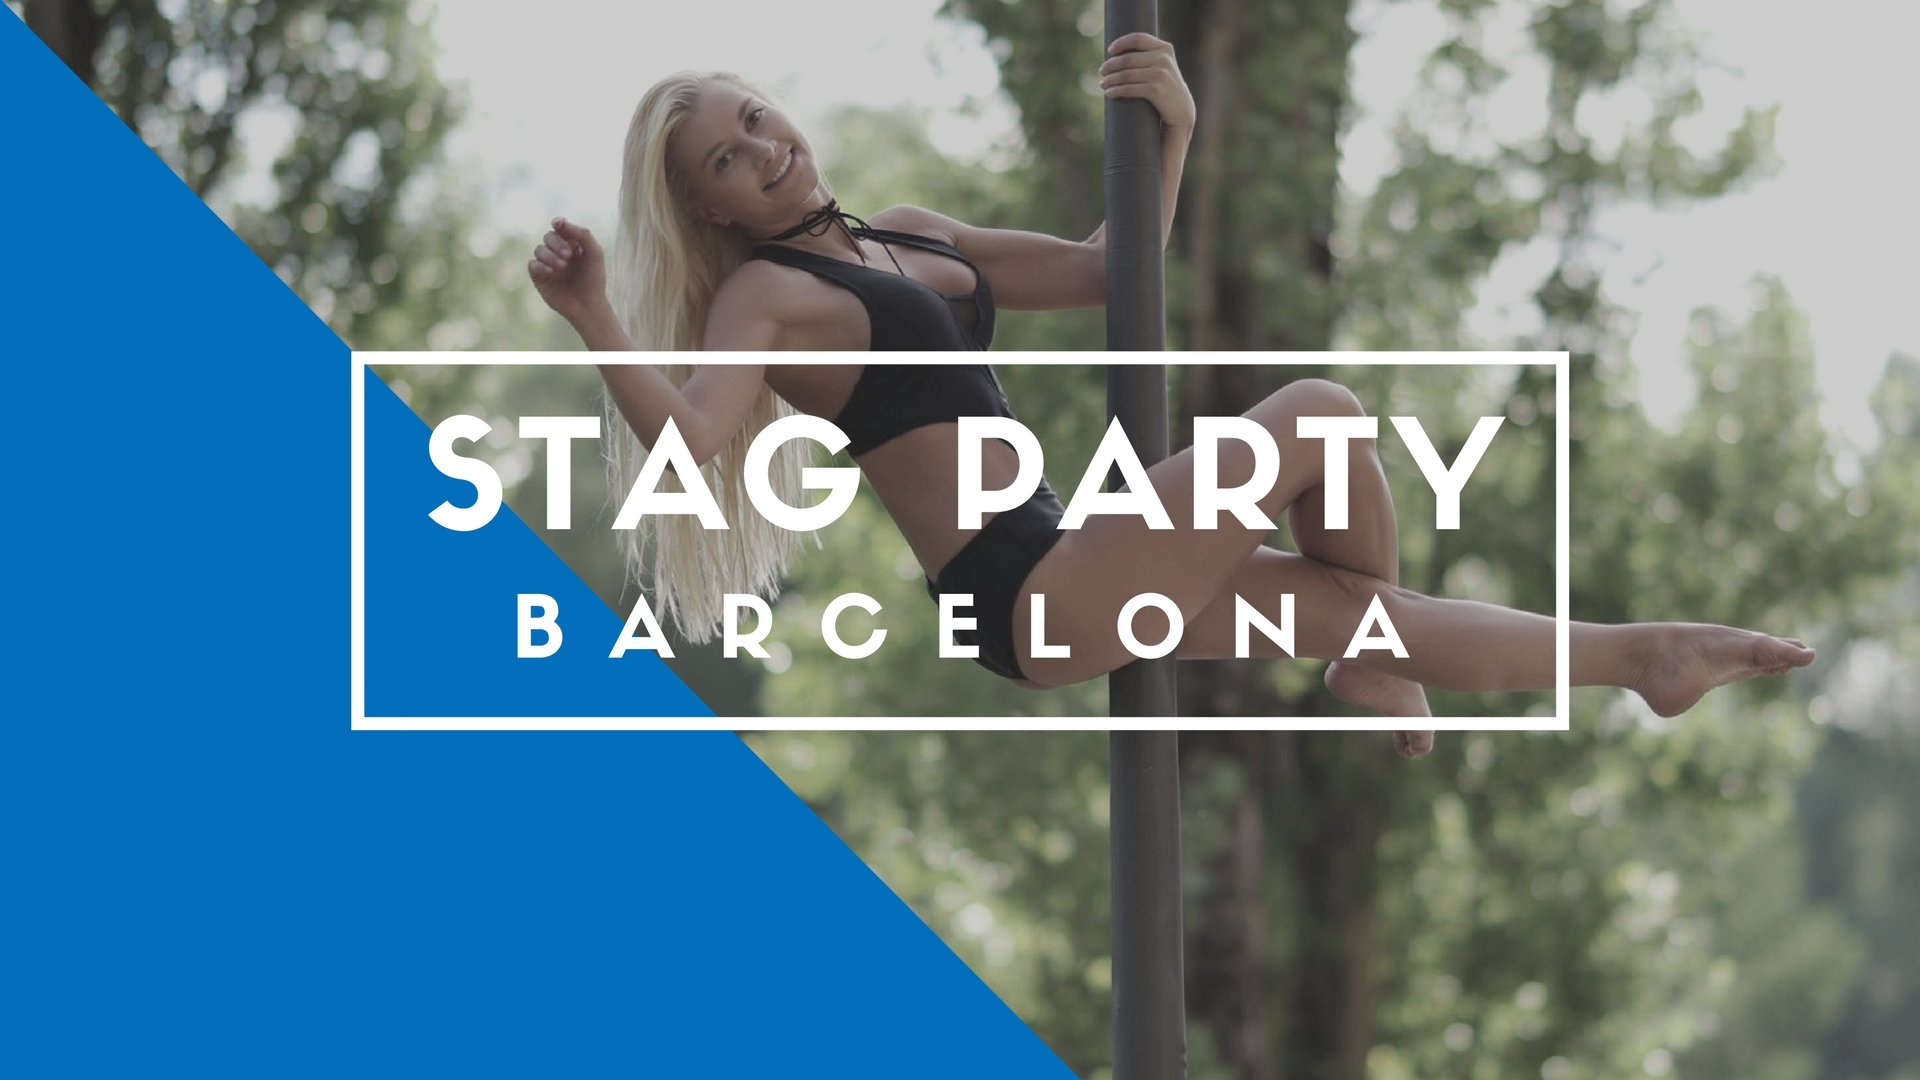 Barcelona Stag Party